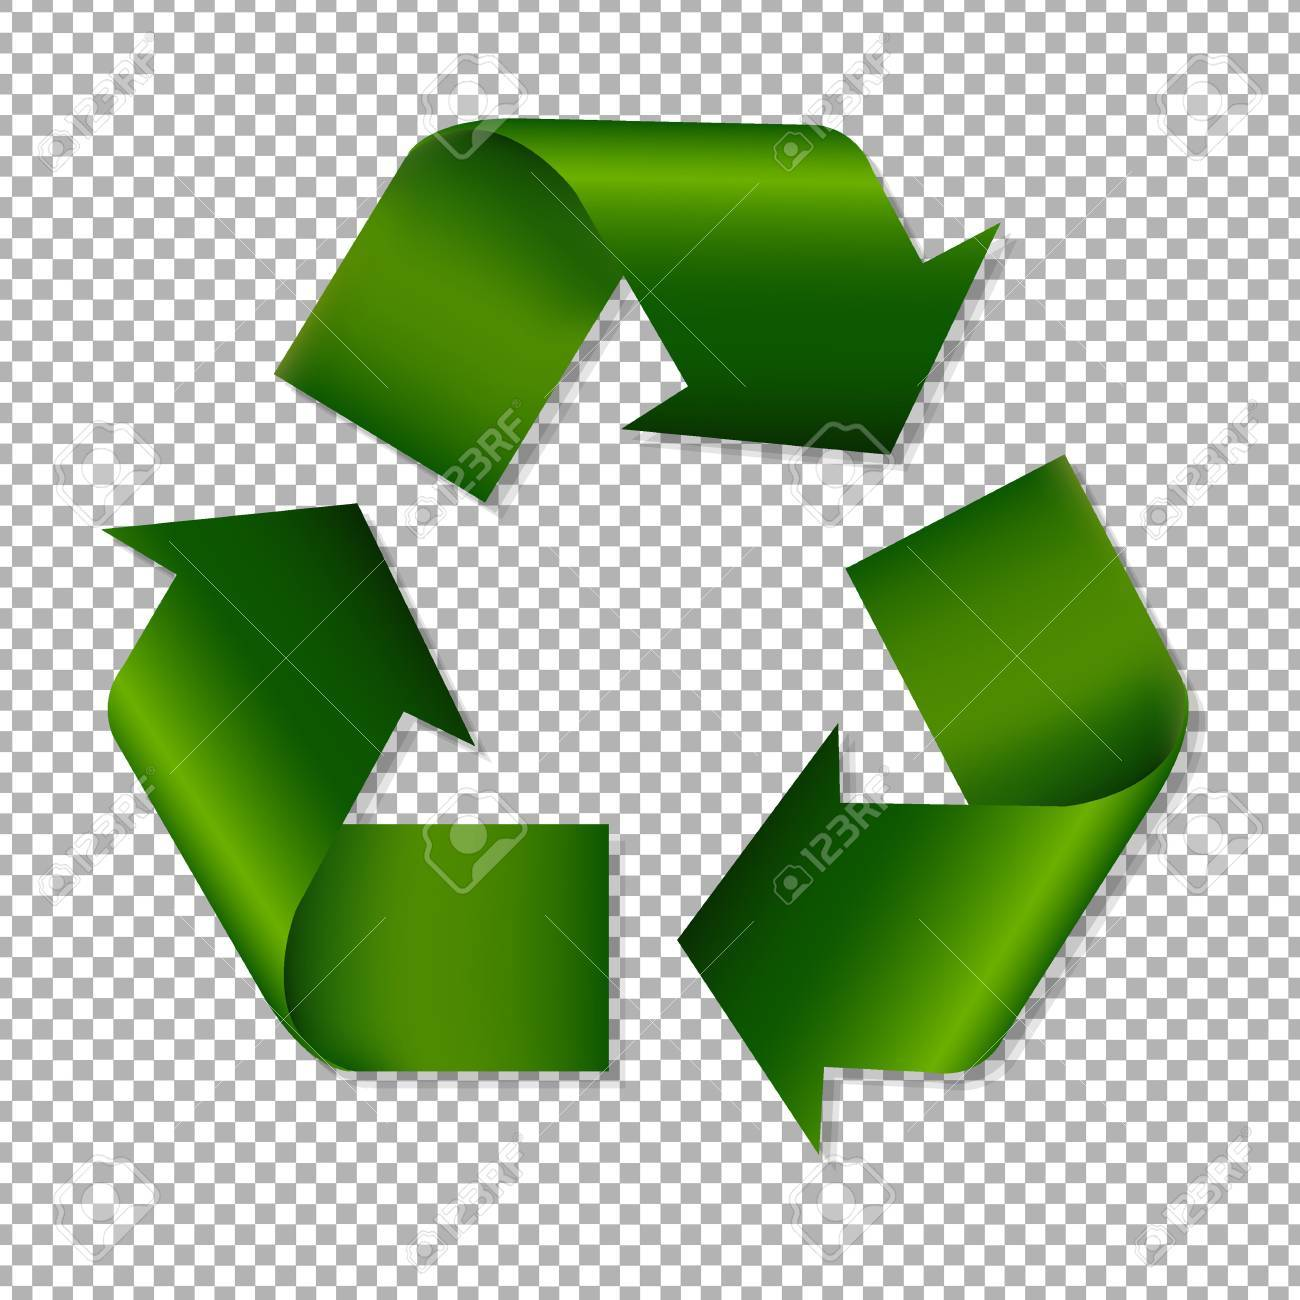 Recycle Sign With Gradient Mesh, Vector Illustration - 74240428